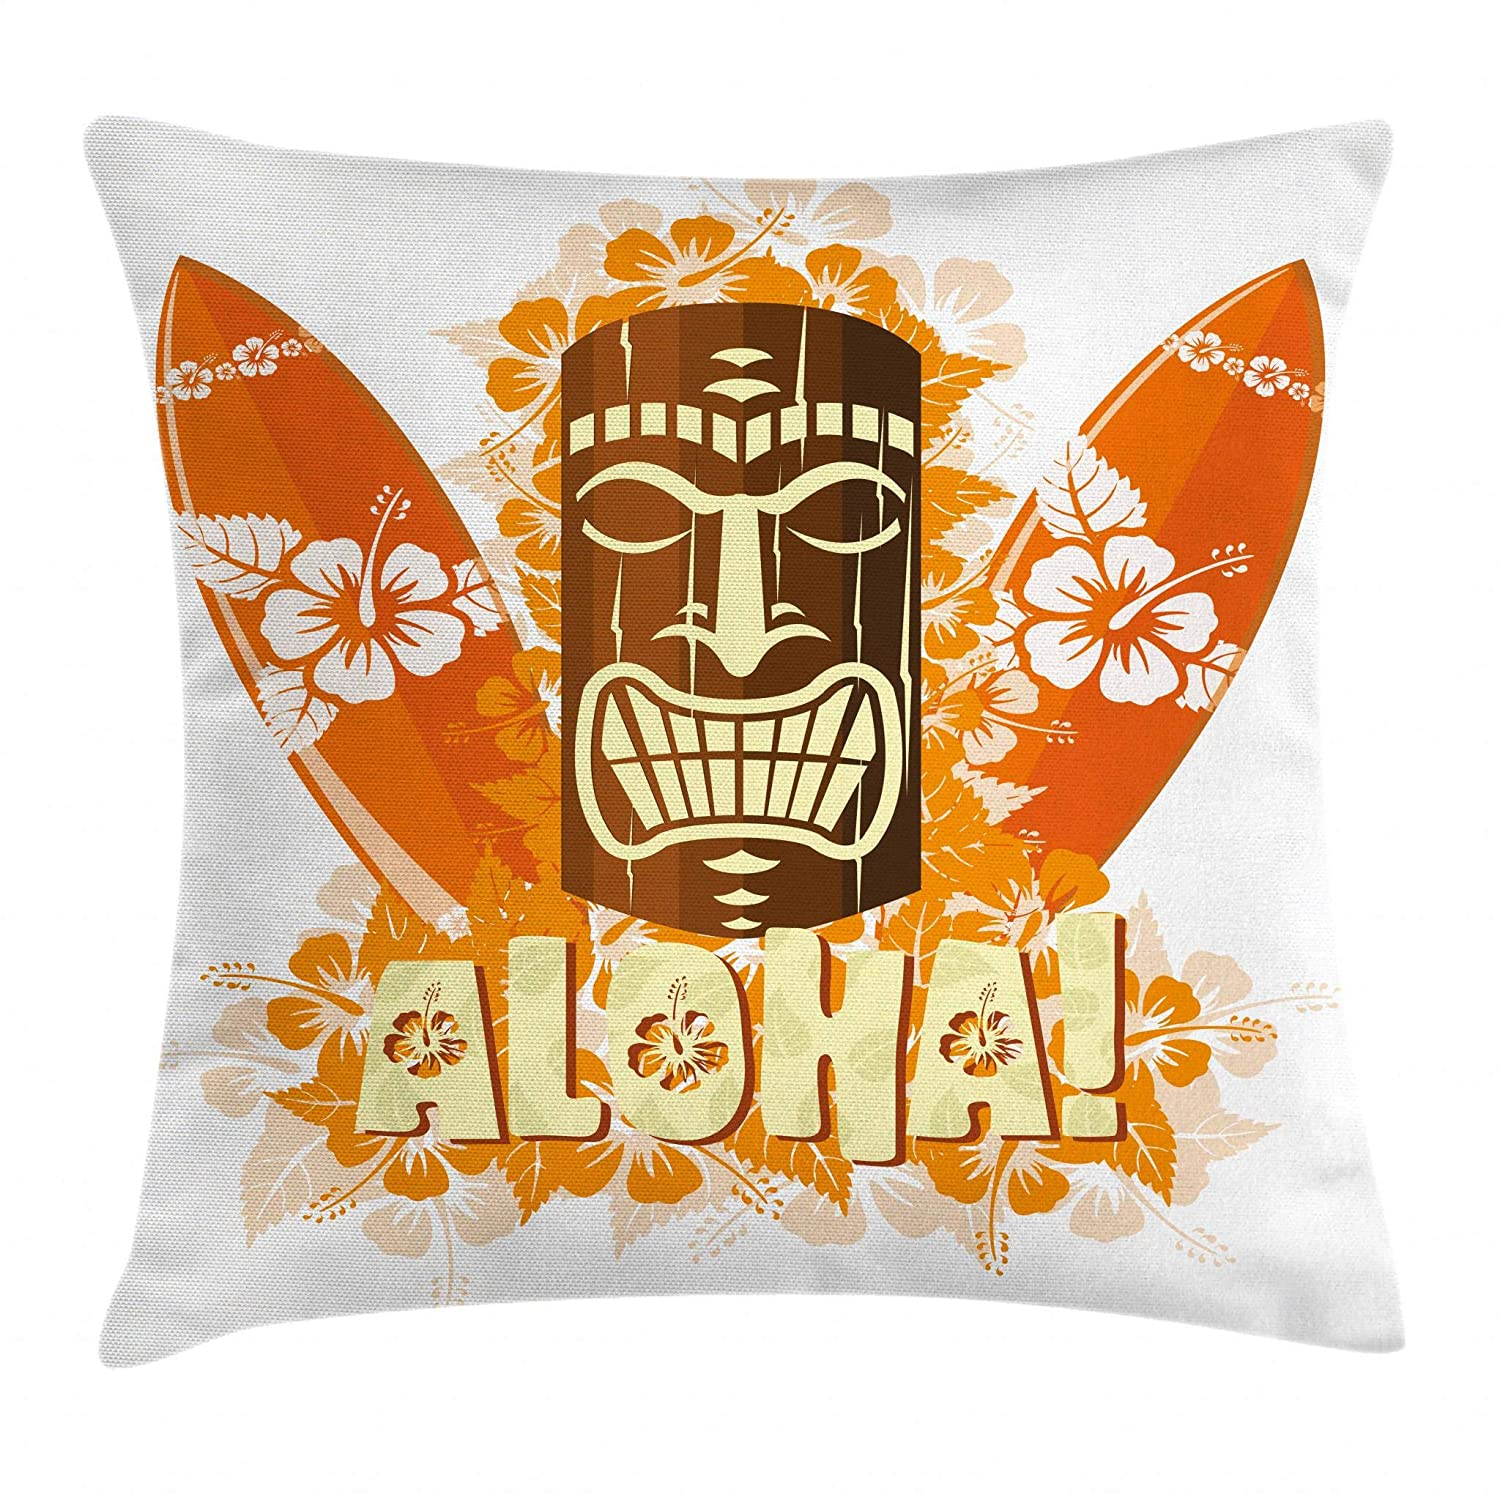 "Ambesonne Tiki Bar Throw Pillow Cushion Cover, Hibiscus Flora Burst Orange Surfboards Aloha Tropical Summer Season, Decorative Square Accent Pillow Case, 16"" X 16"", Yellow Orange"